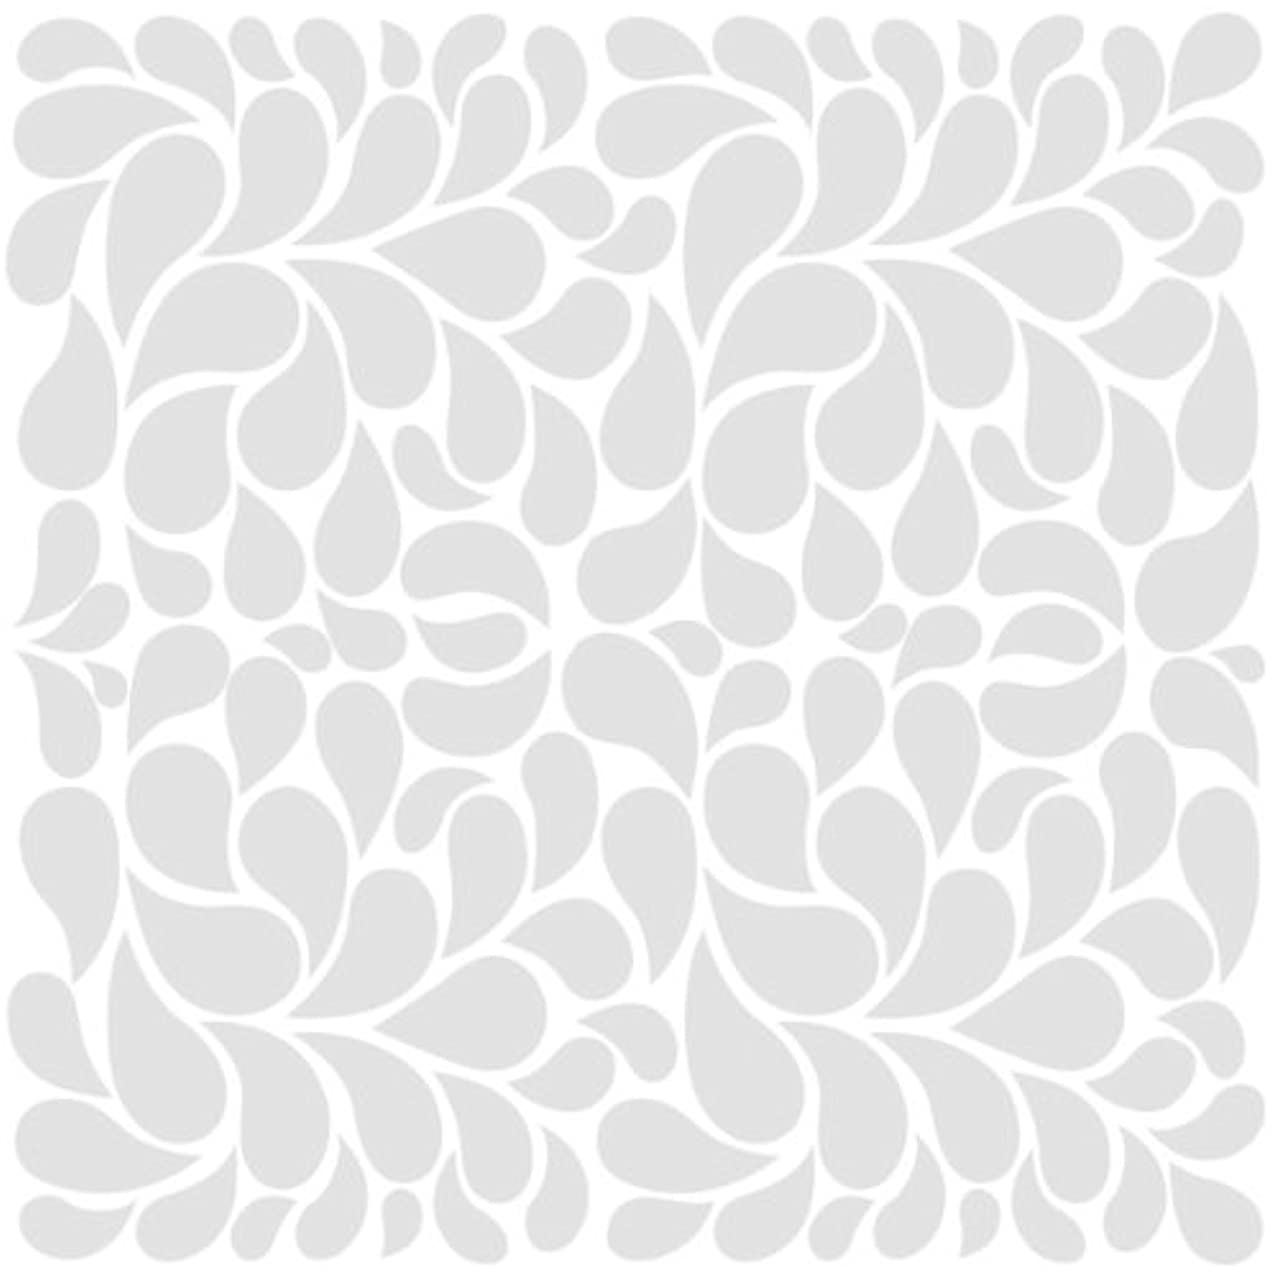 Bazzill Basics Glazed 12x12 Cardstock 15-Pack: Fancy Feathers Bazzill White